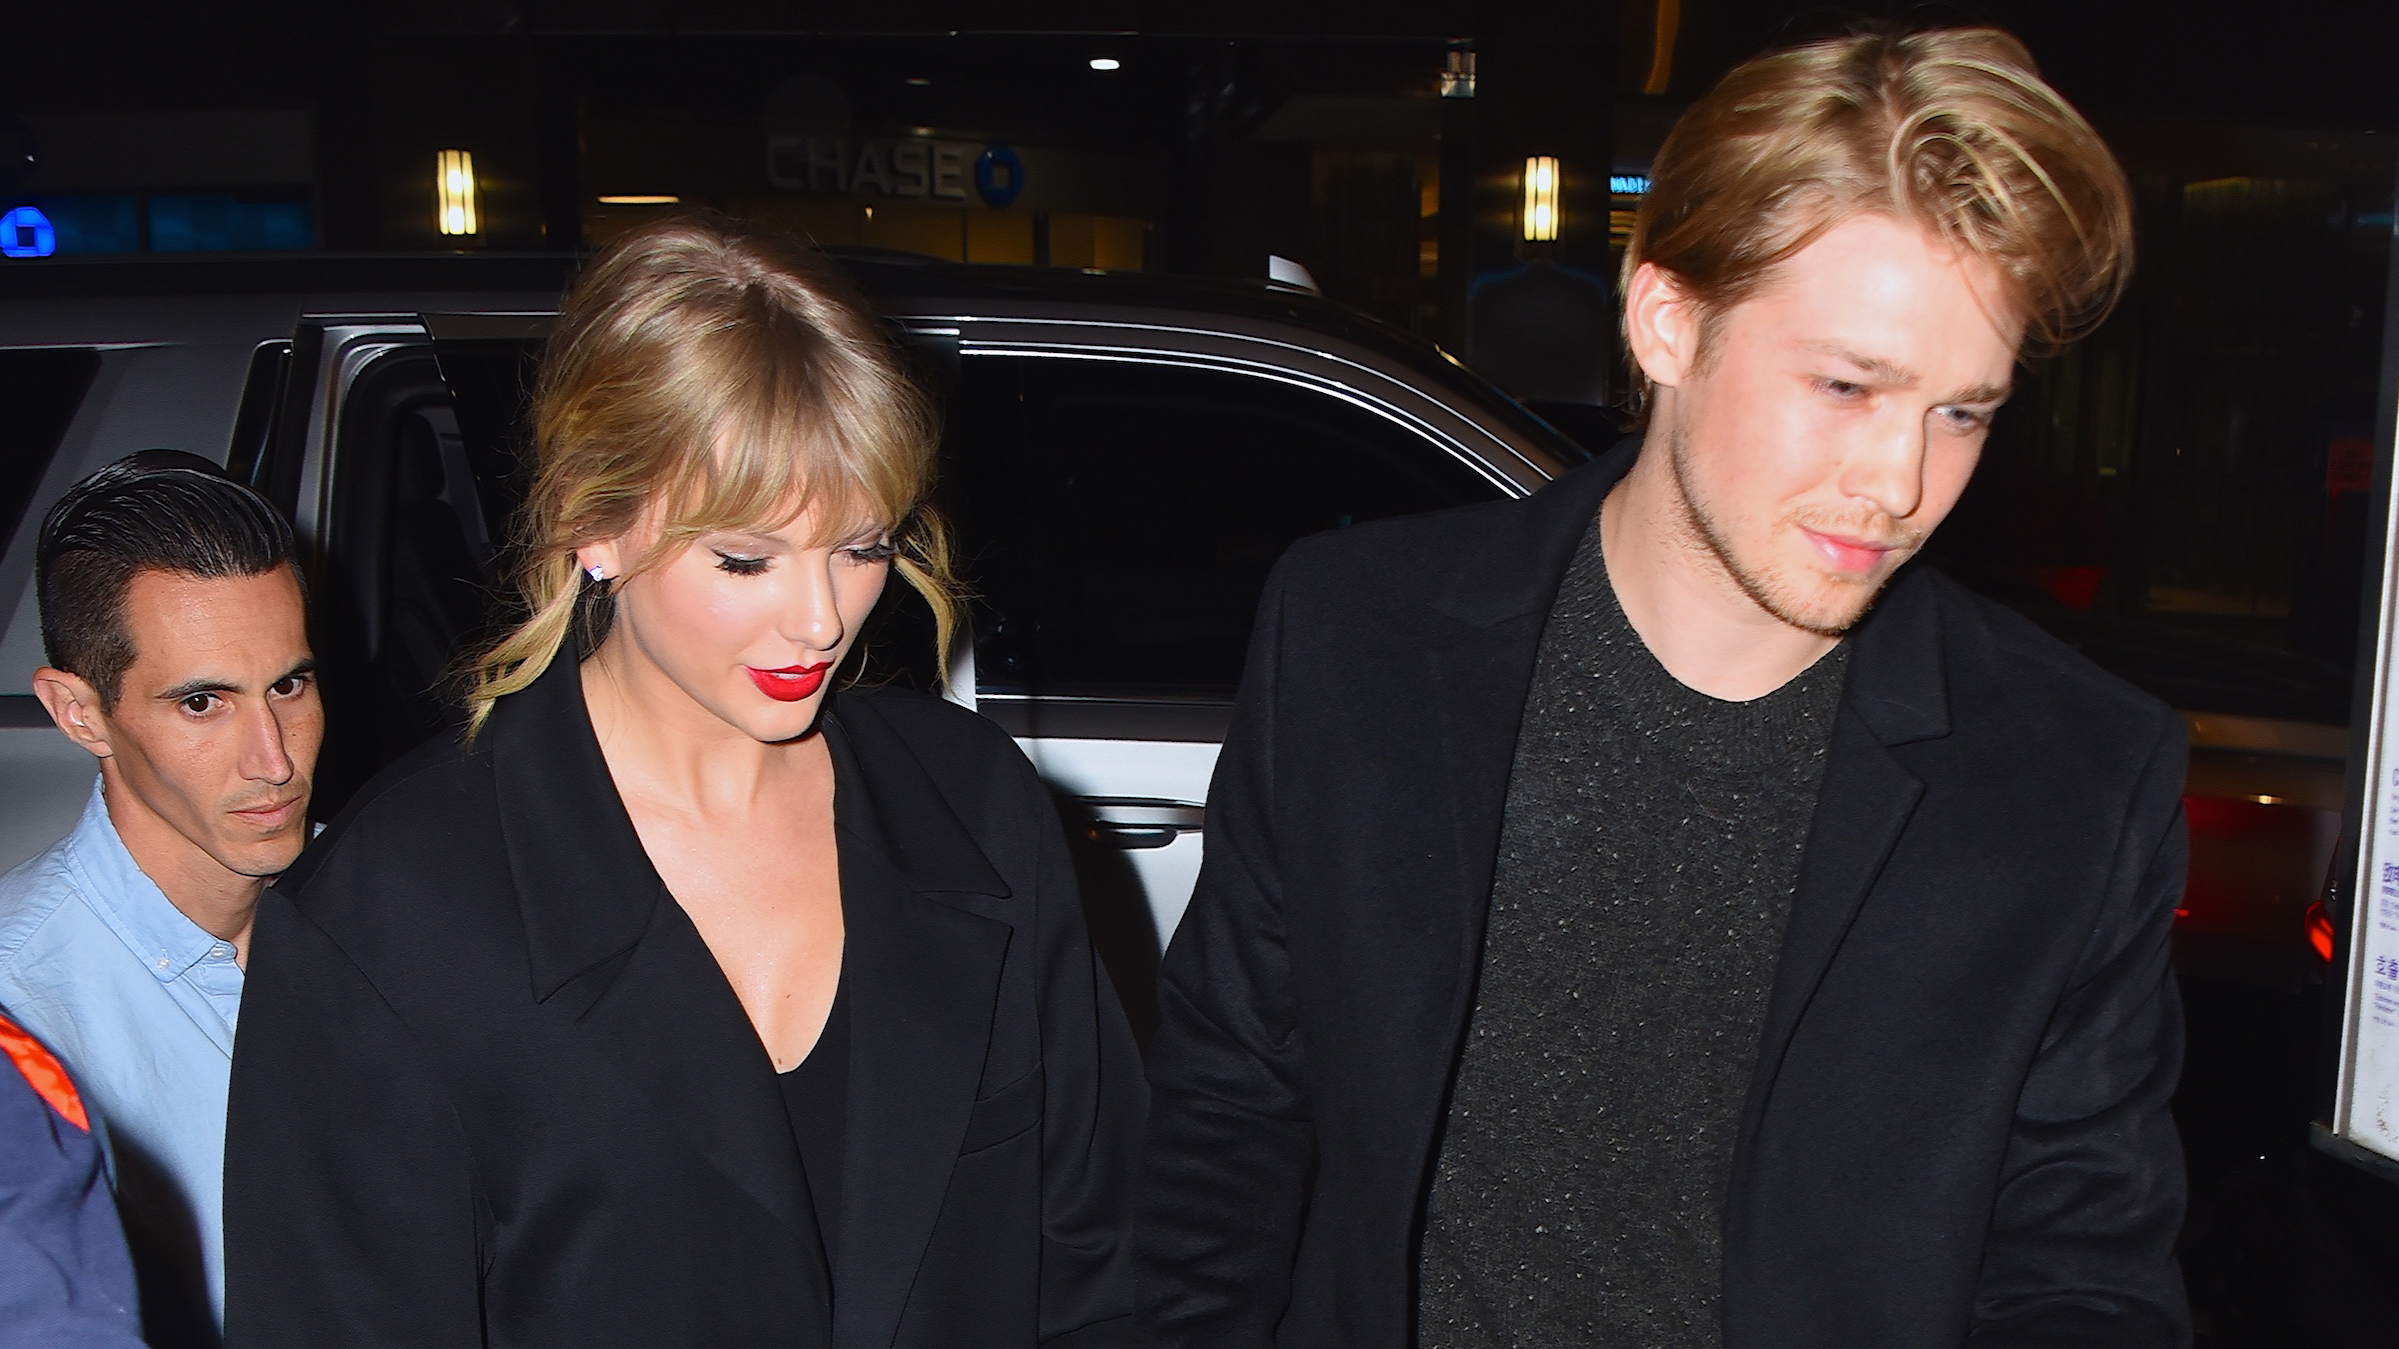 What Taylor Swift Thinks Of Joe Alwyn's Upcoming Role In Conversations With Friends